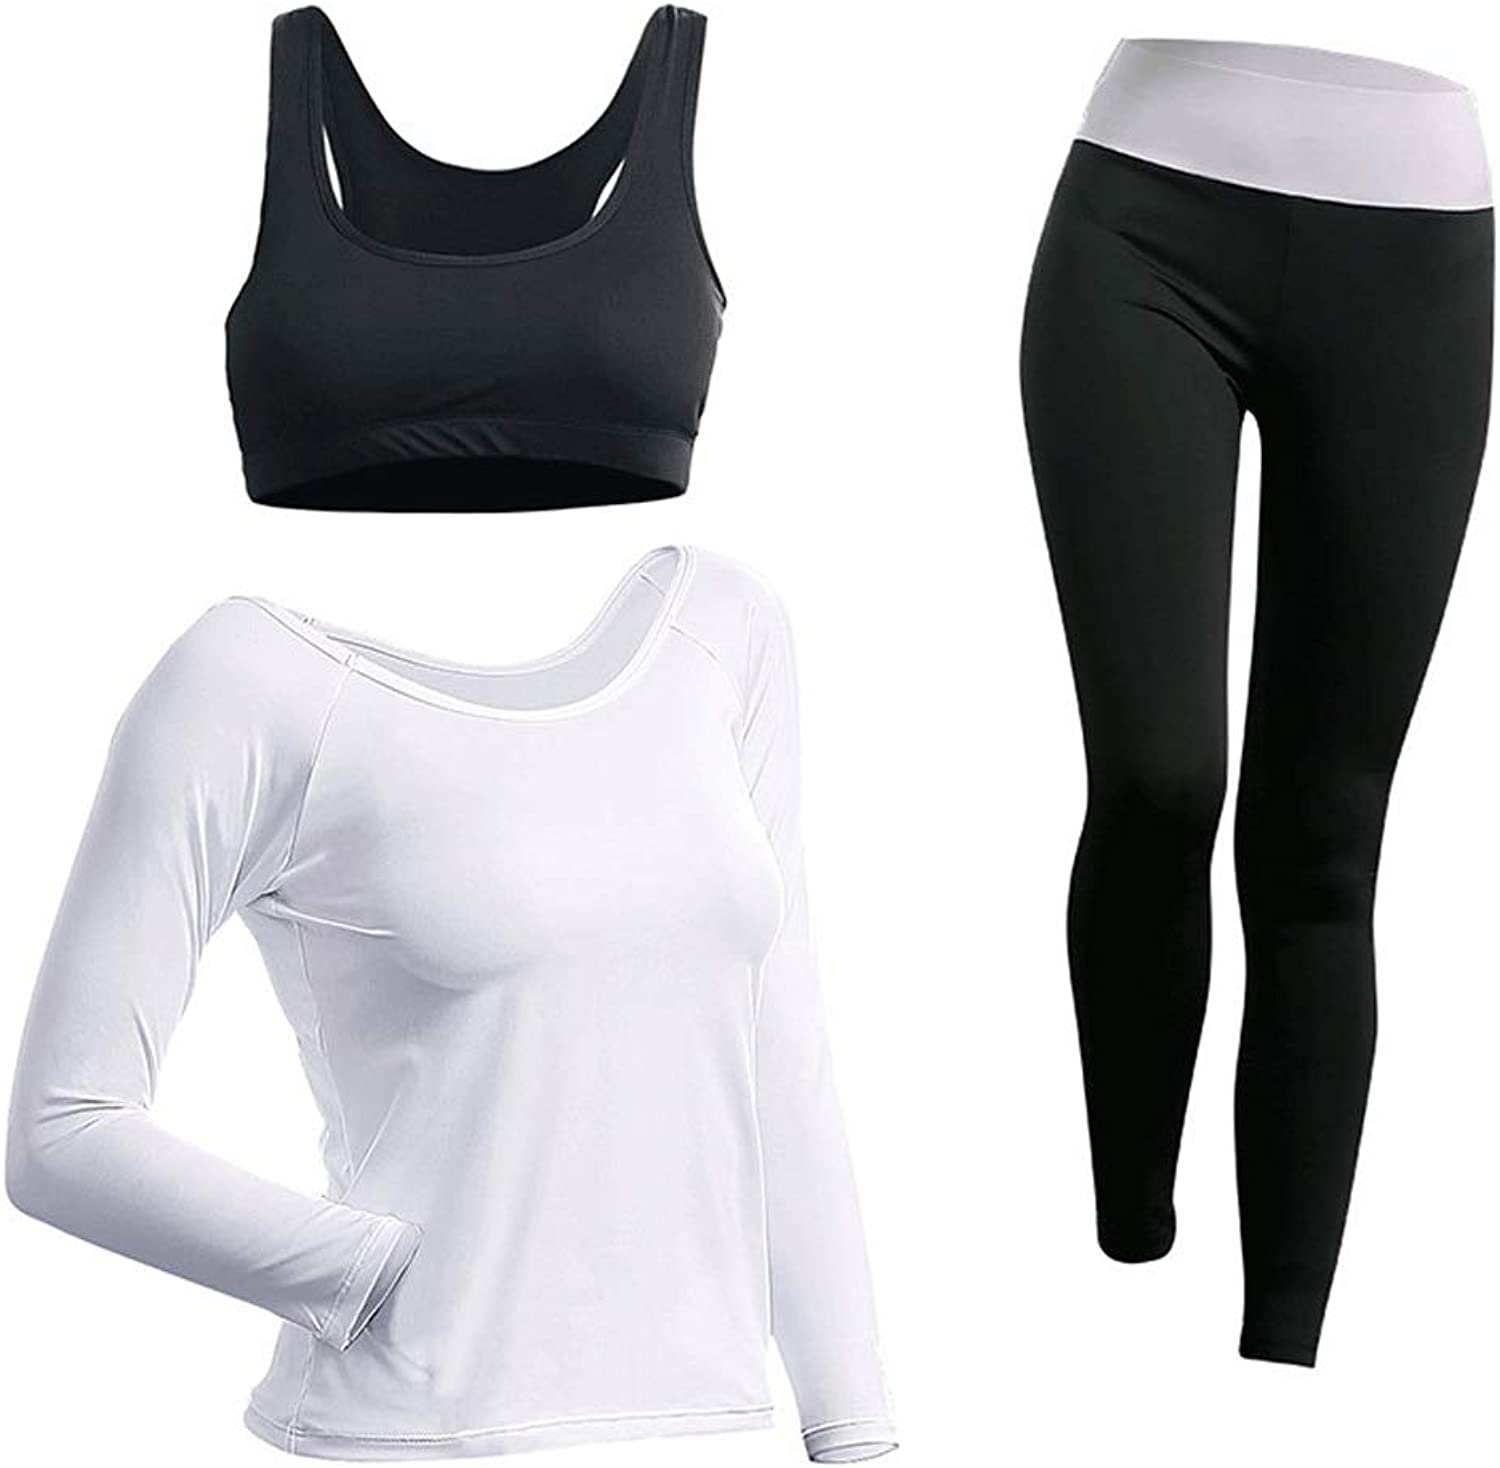 Sportswear Women's White Yoga Wear HighElastic Slim Breathable Gym QuickDrying Clothes ThreePiece Long Sleeve Outdoor Sportswear SXL (color   White, Size   M)